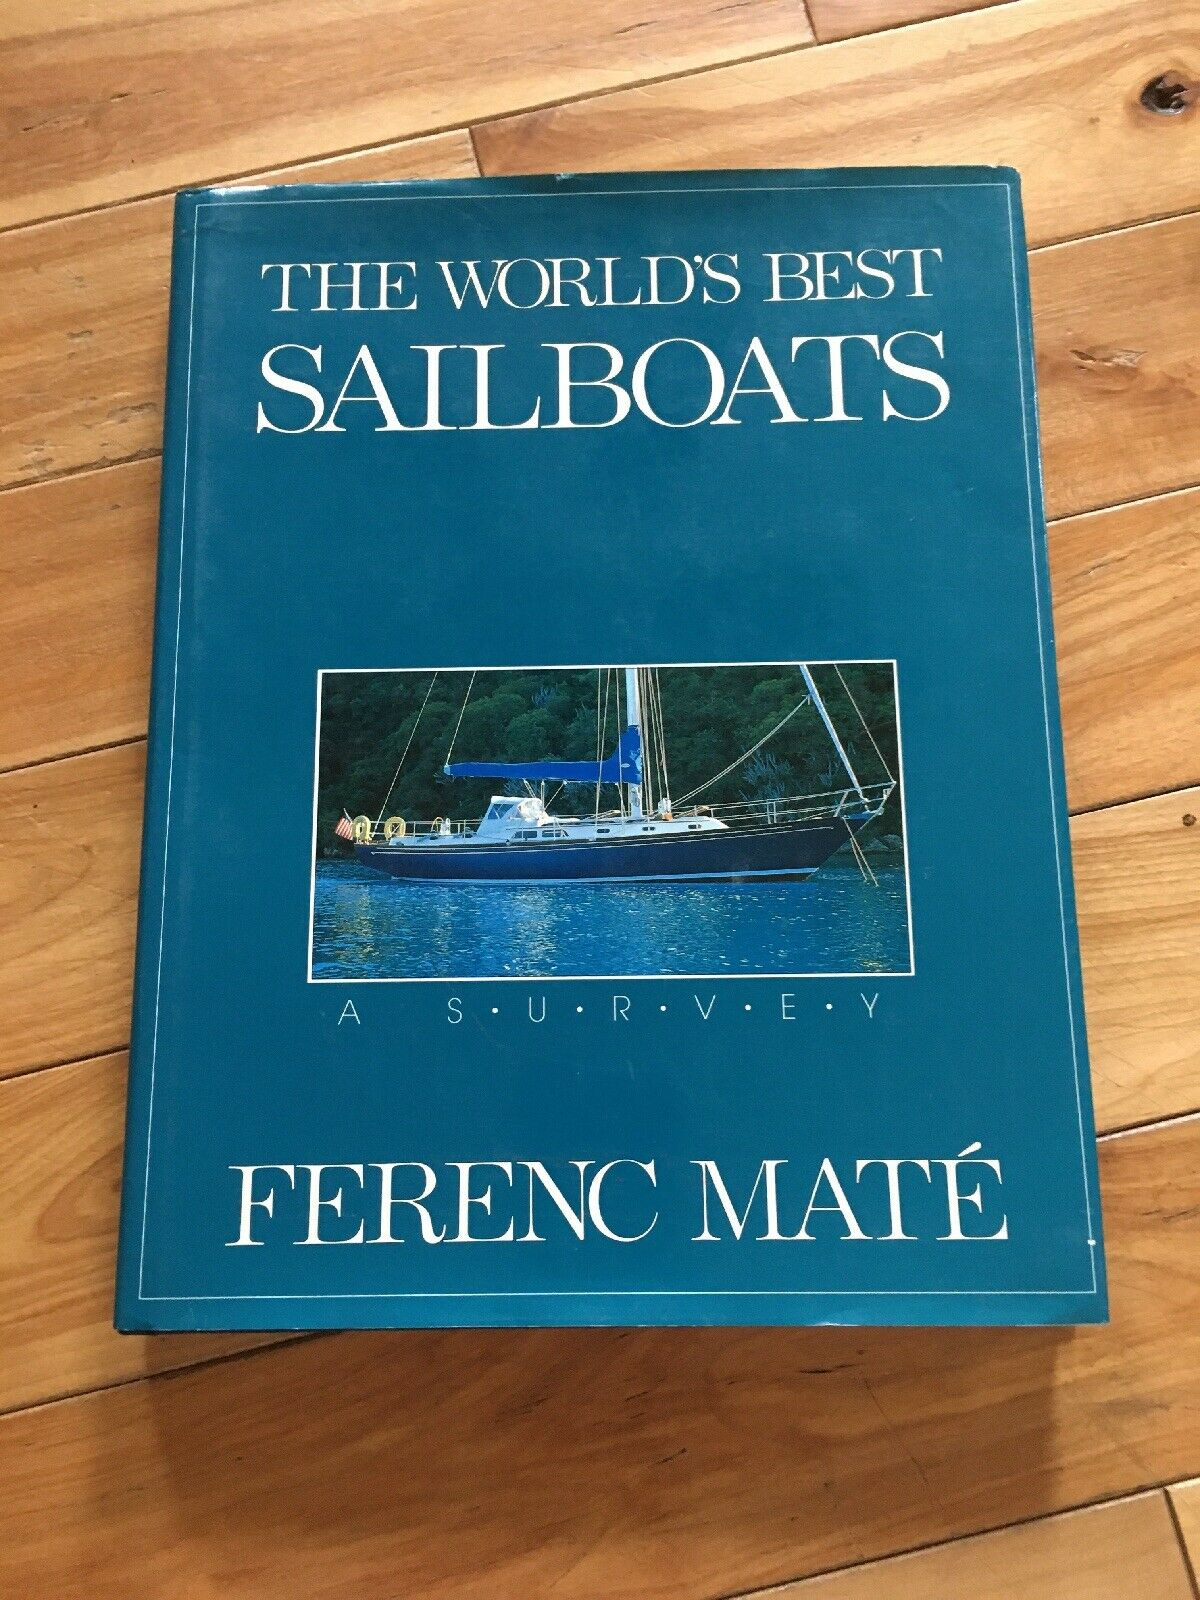 Image result for The World's Best Sailboats: A Survey by Ferenc Mate